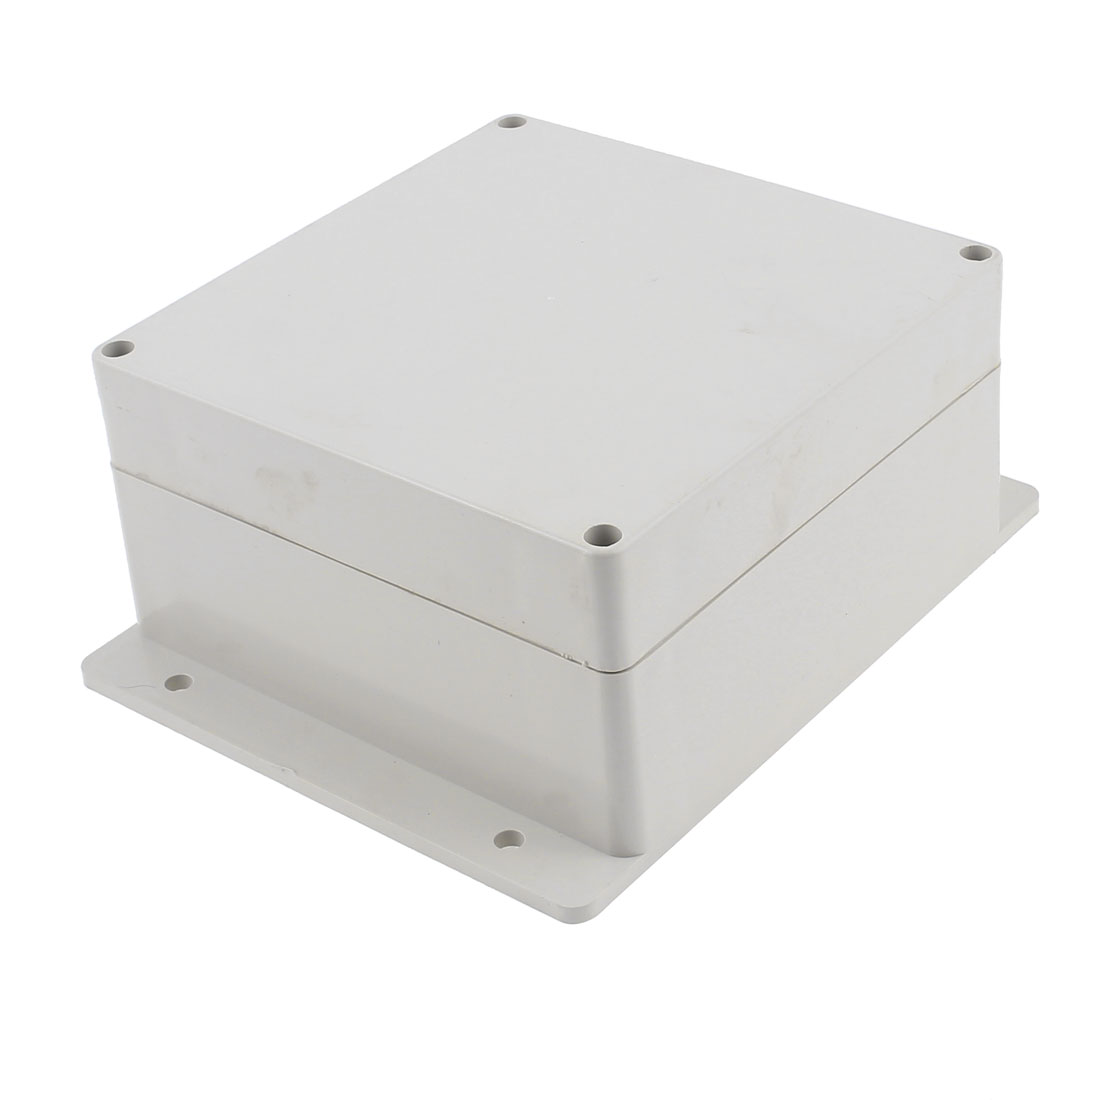 200 x 160 x 90mm Dustproof IP65 Junction Box Terminal Connecting Enclosure